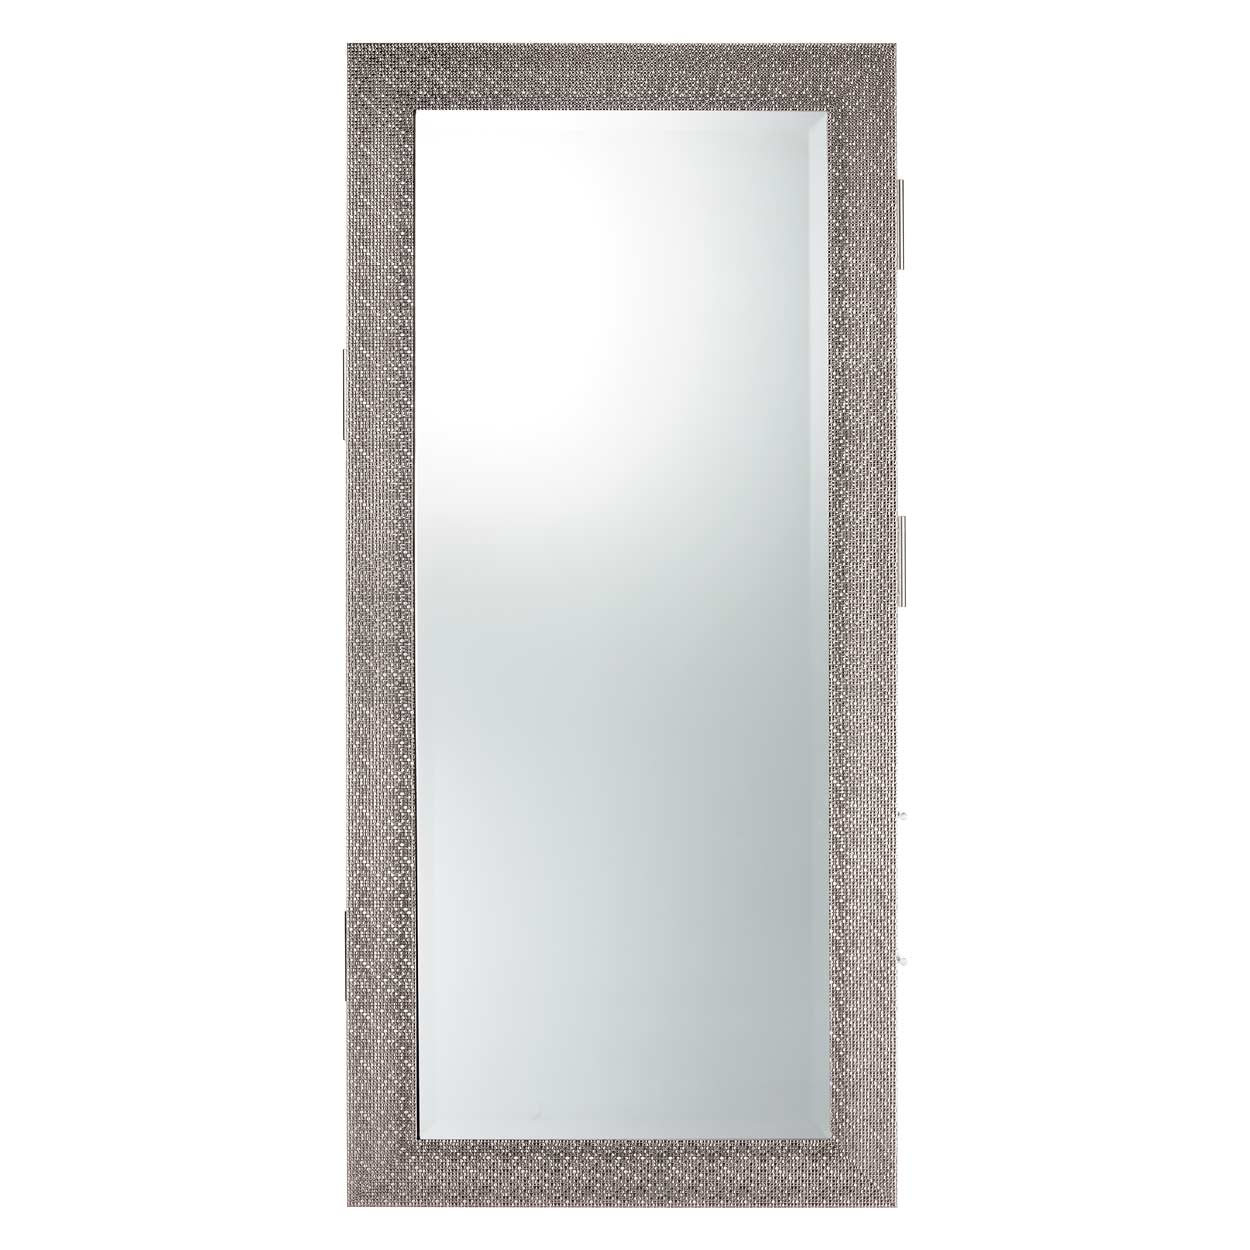 Diamond Framed Mirror Wall Hanging Styling Station alternative product image 4